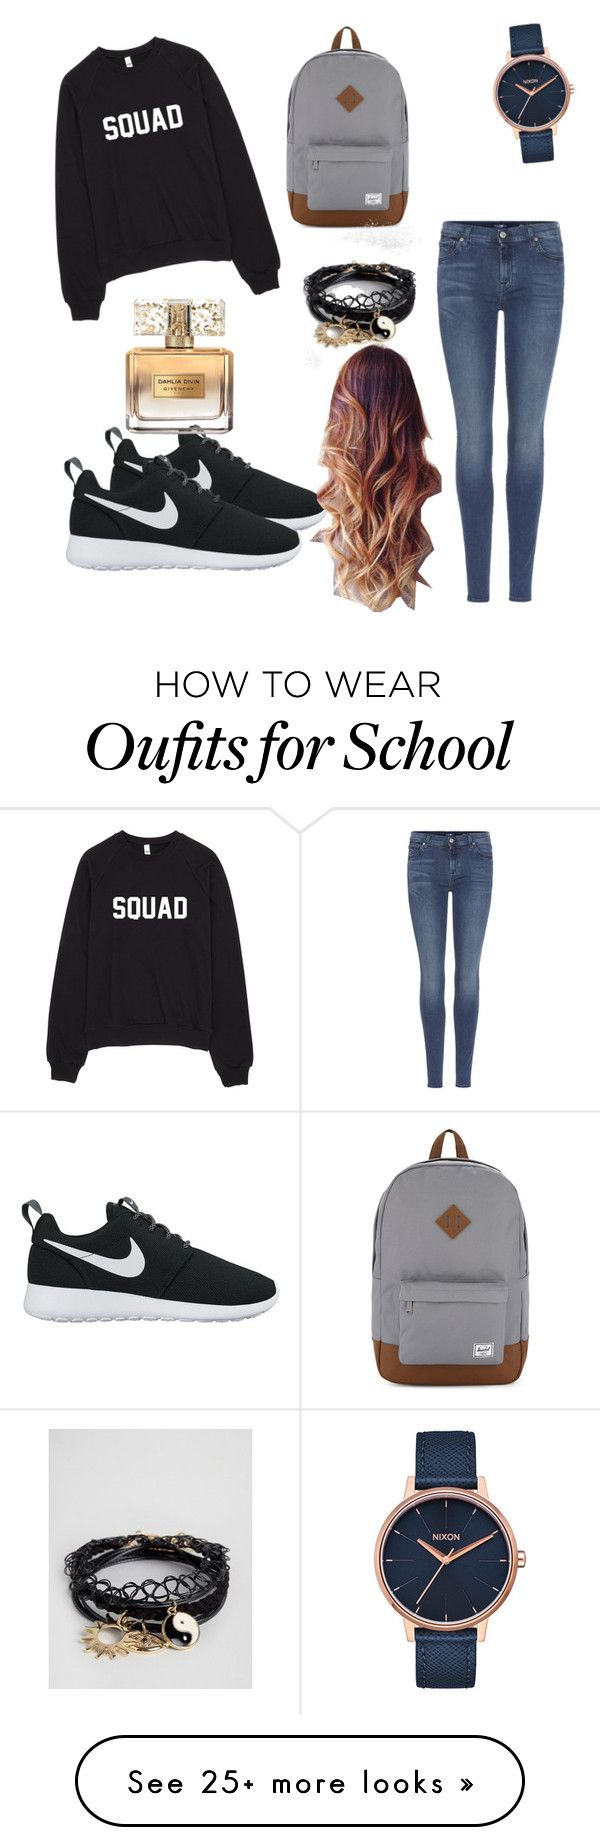 Casual School Look #10 by zainabchaoui on Polyvore featuring 7 For All Mankind, NIKE, Herschel Supply Co., Nixon, ASOS and Givenchy